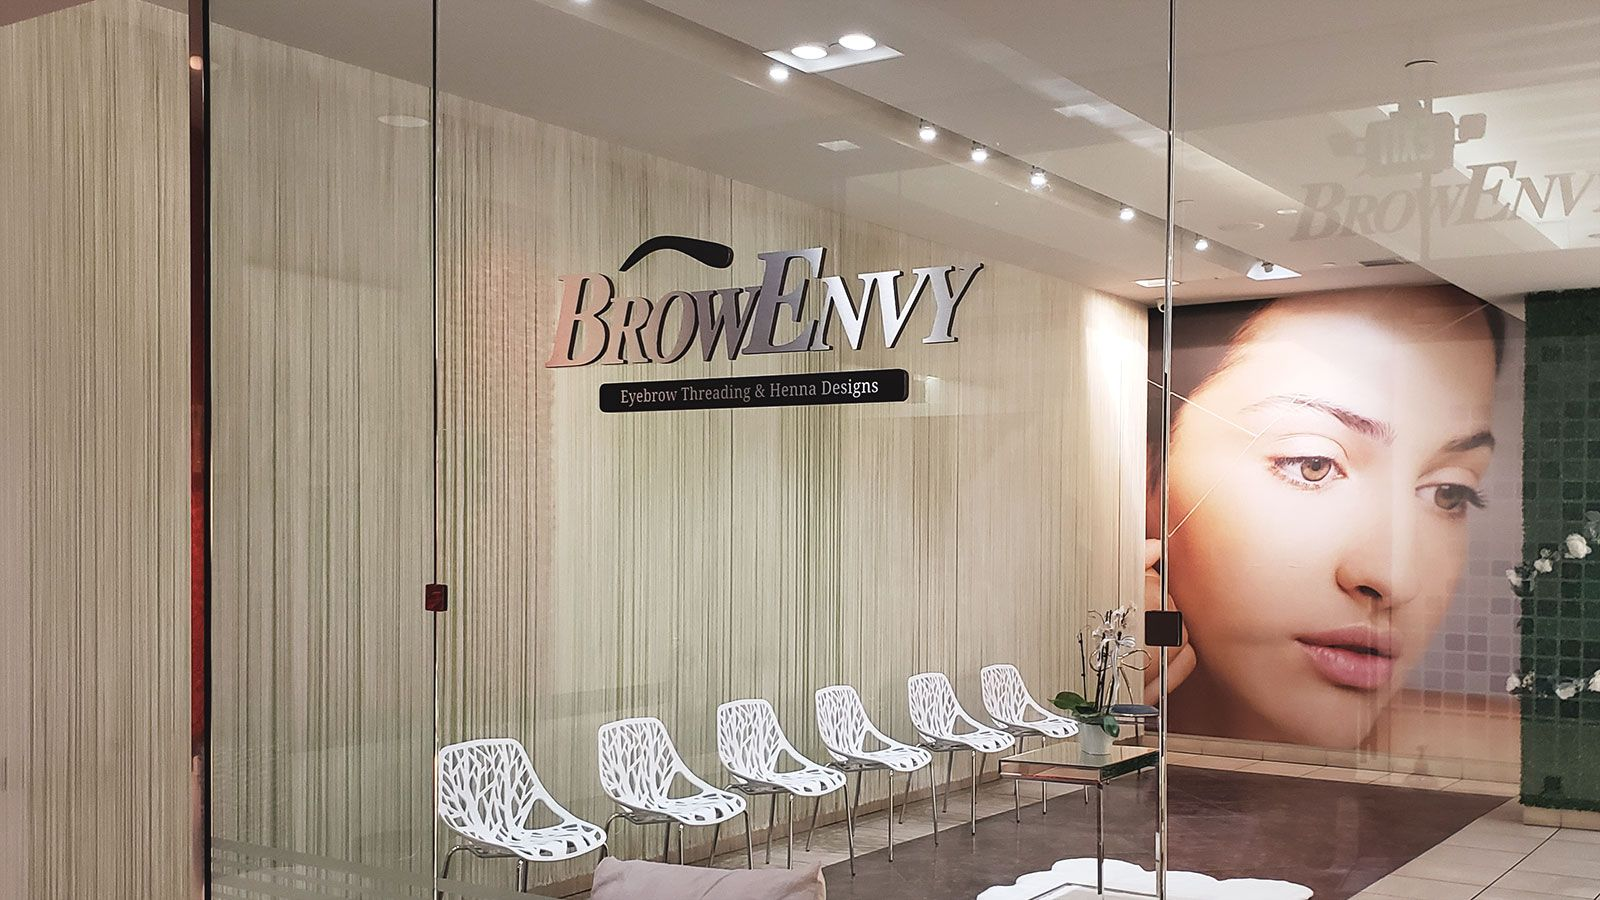 Brow Envy ultra board sign